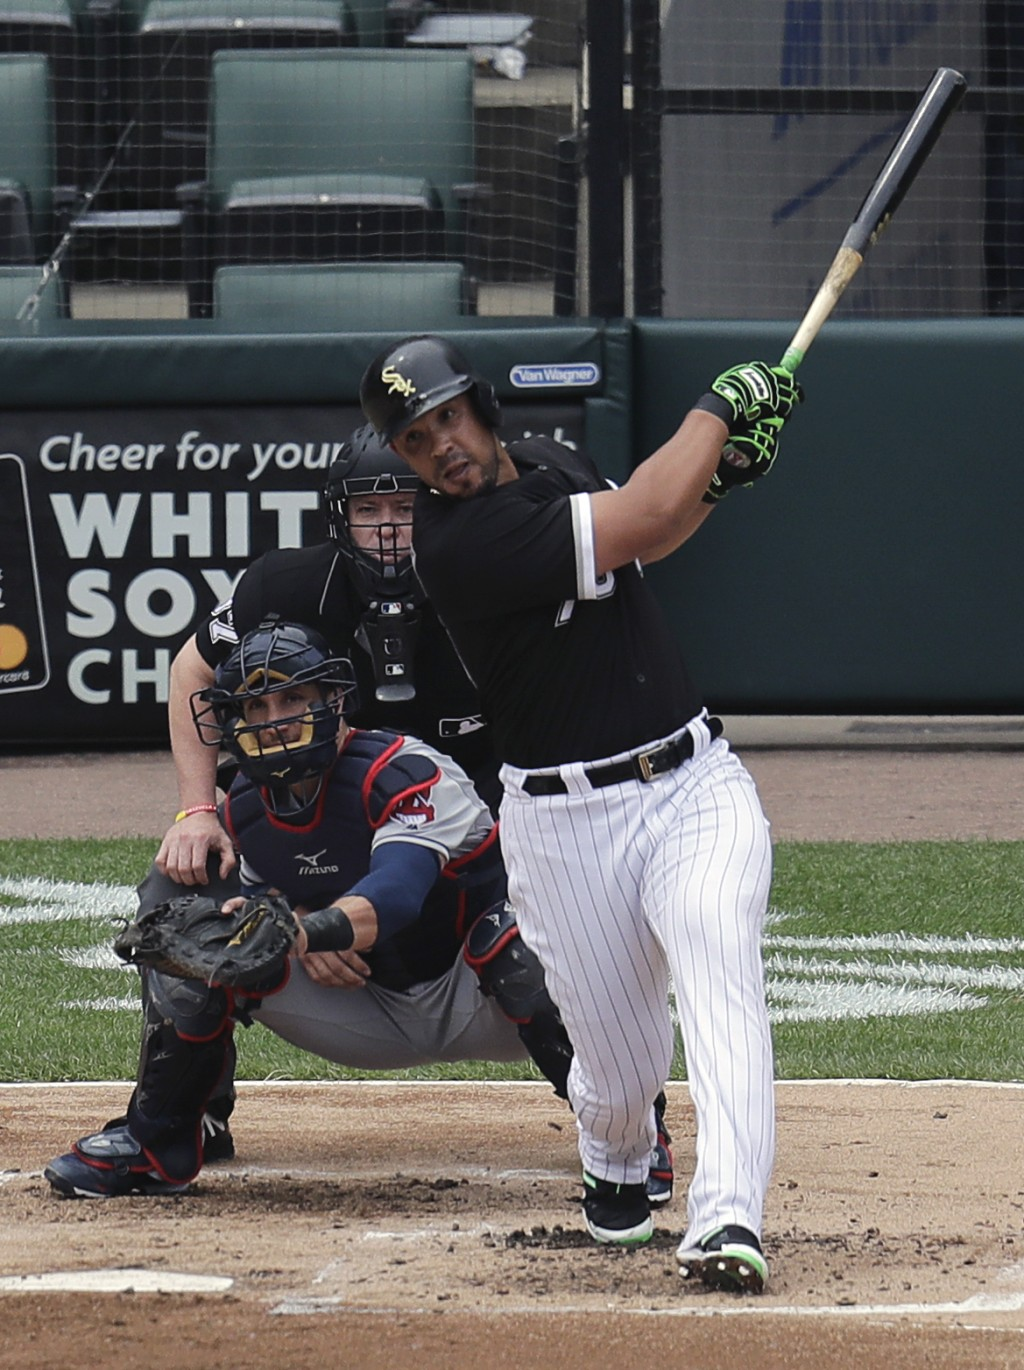 Chicago White Sox Jose Abreu hits a home run during the first inning of baseball game against the Cleveland Indians Thursday, June 14, 2018, in Chicag